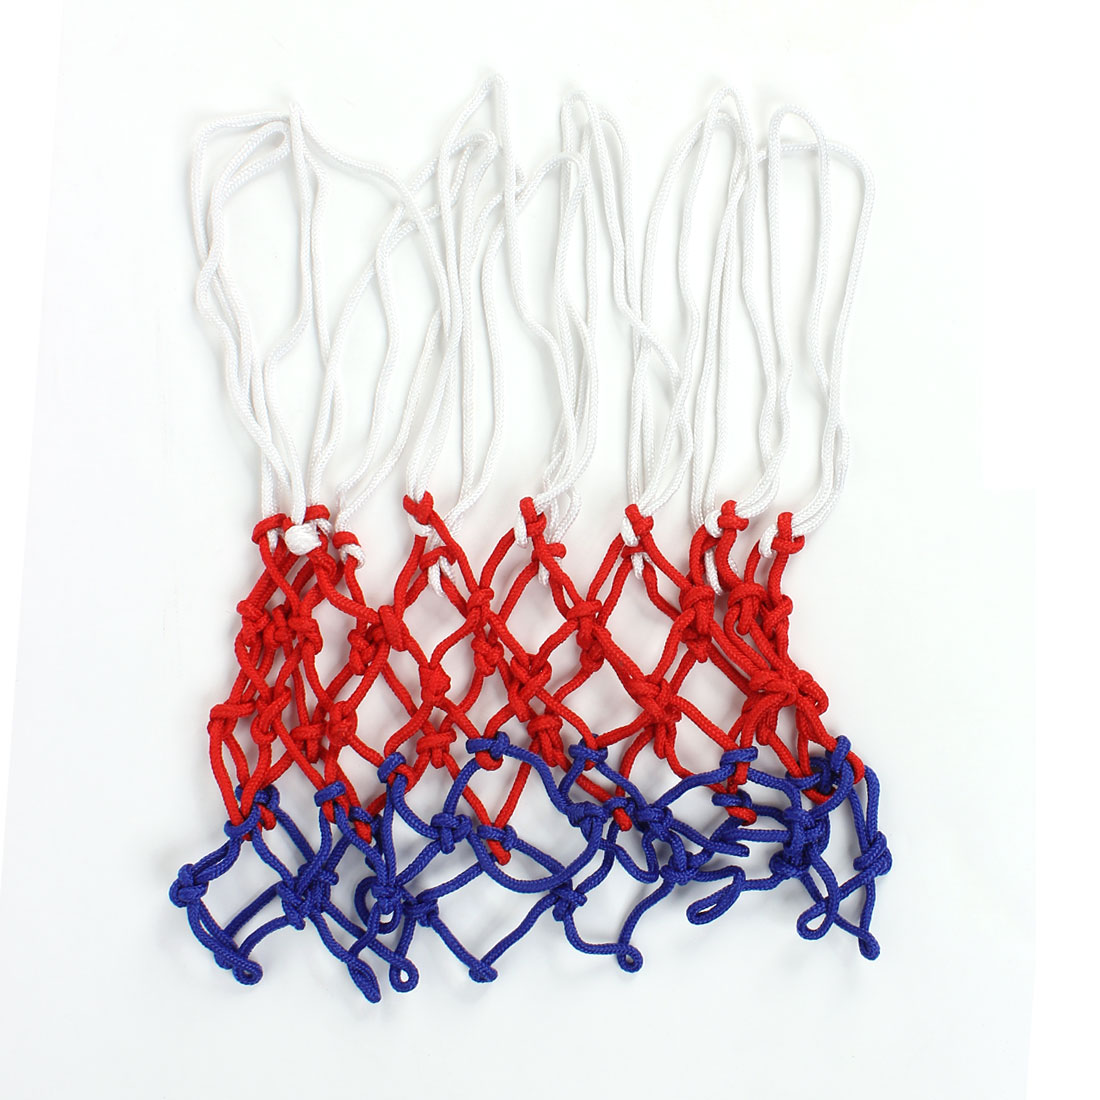 Red White Nylon Rope 12 Loops Knotted Basketball Net Netting